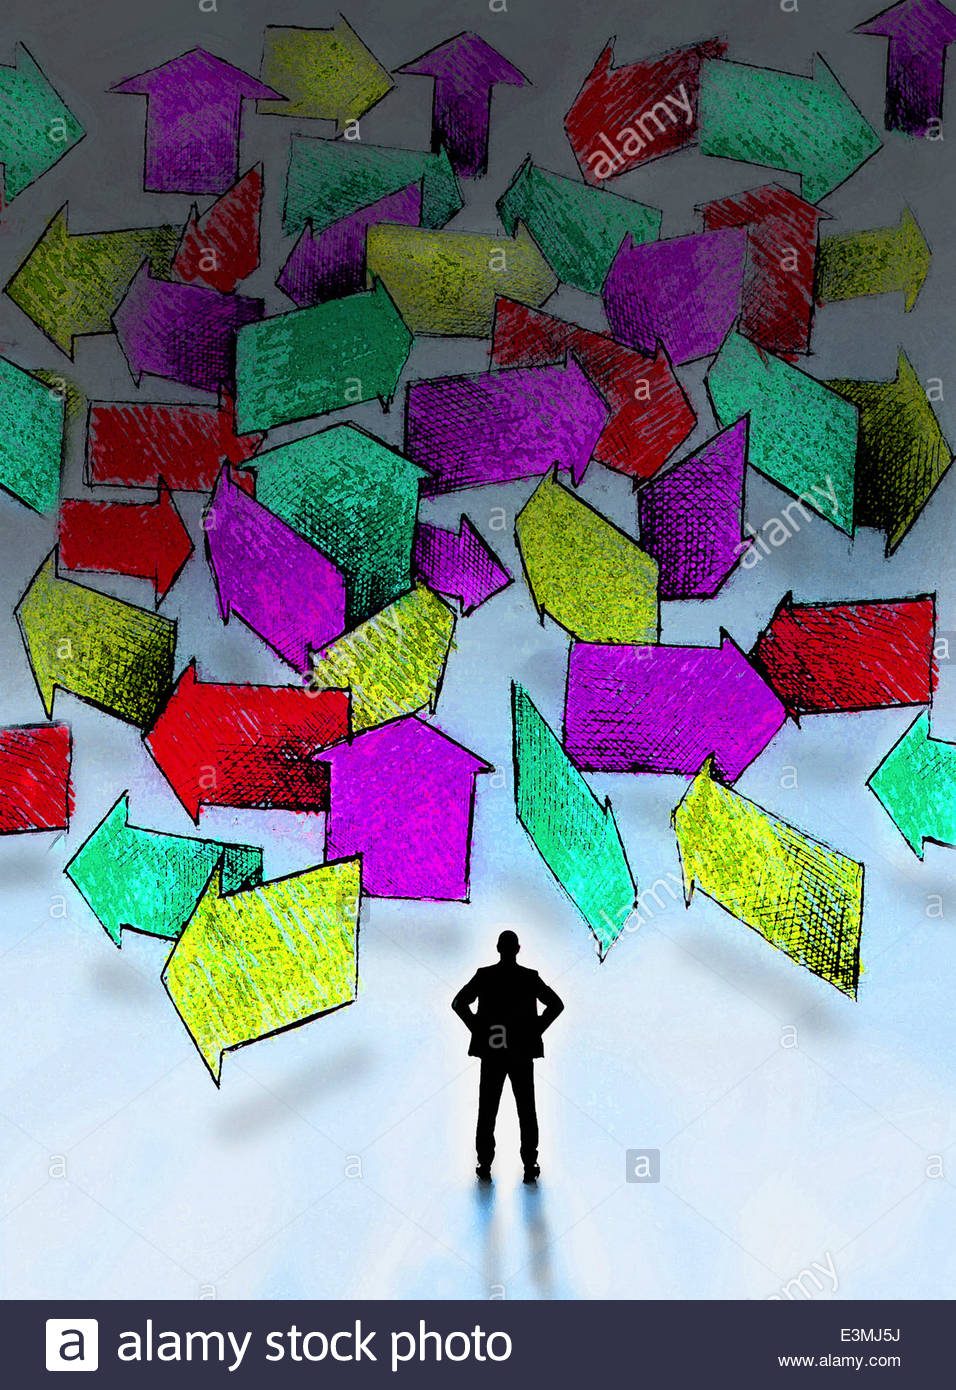 Businessman standing in front of lots of multicolored arrows pointing in different directions - Stock Image